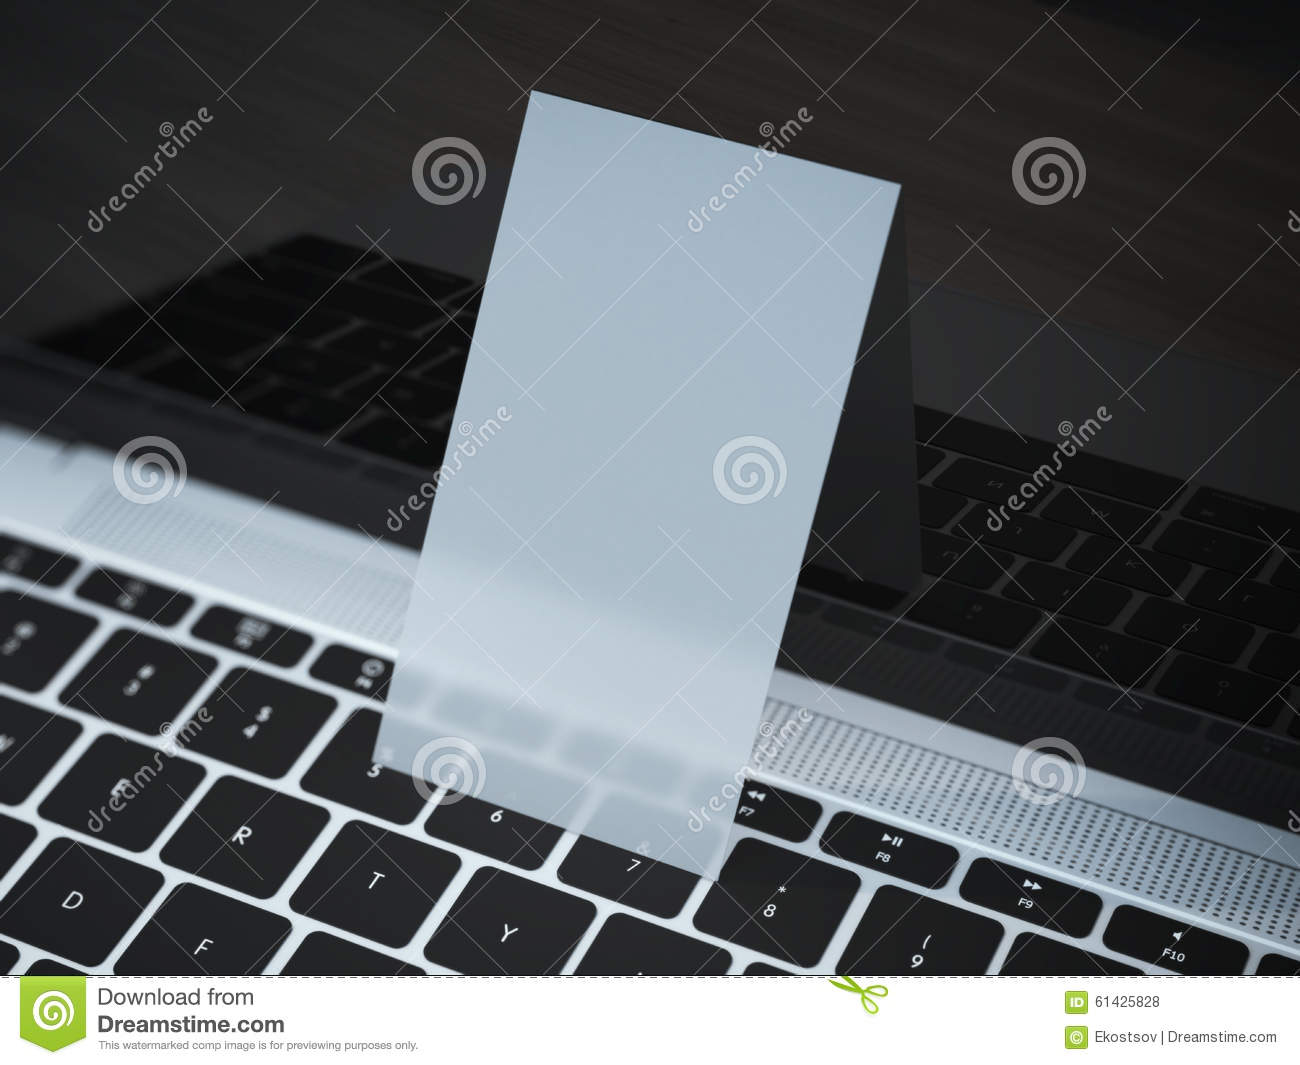 Download Carte De Visite Professionnelle Transparente Sur Lordinateur Portable Photo Stock